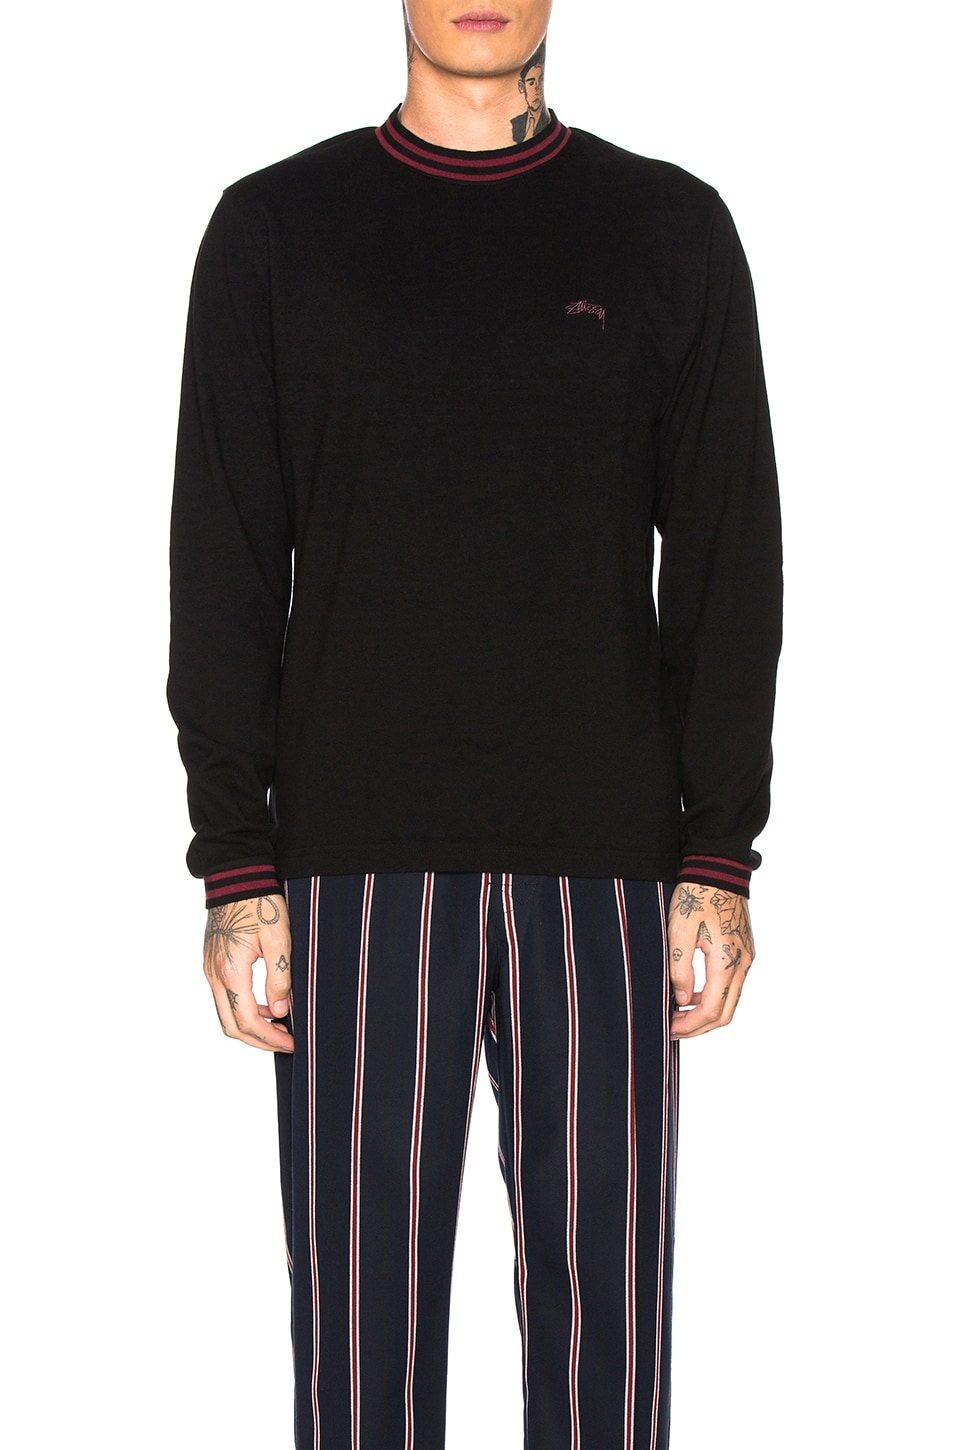 Stussy T-SHIRT MANCHES LONGUES BRODY